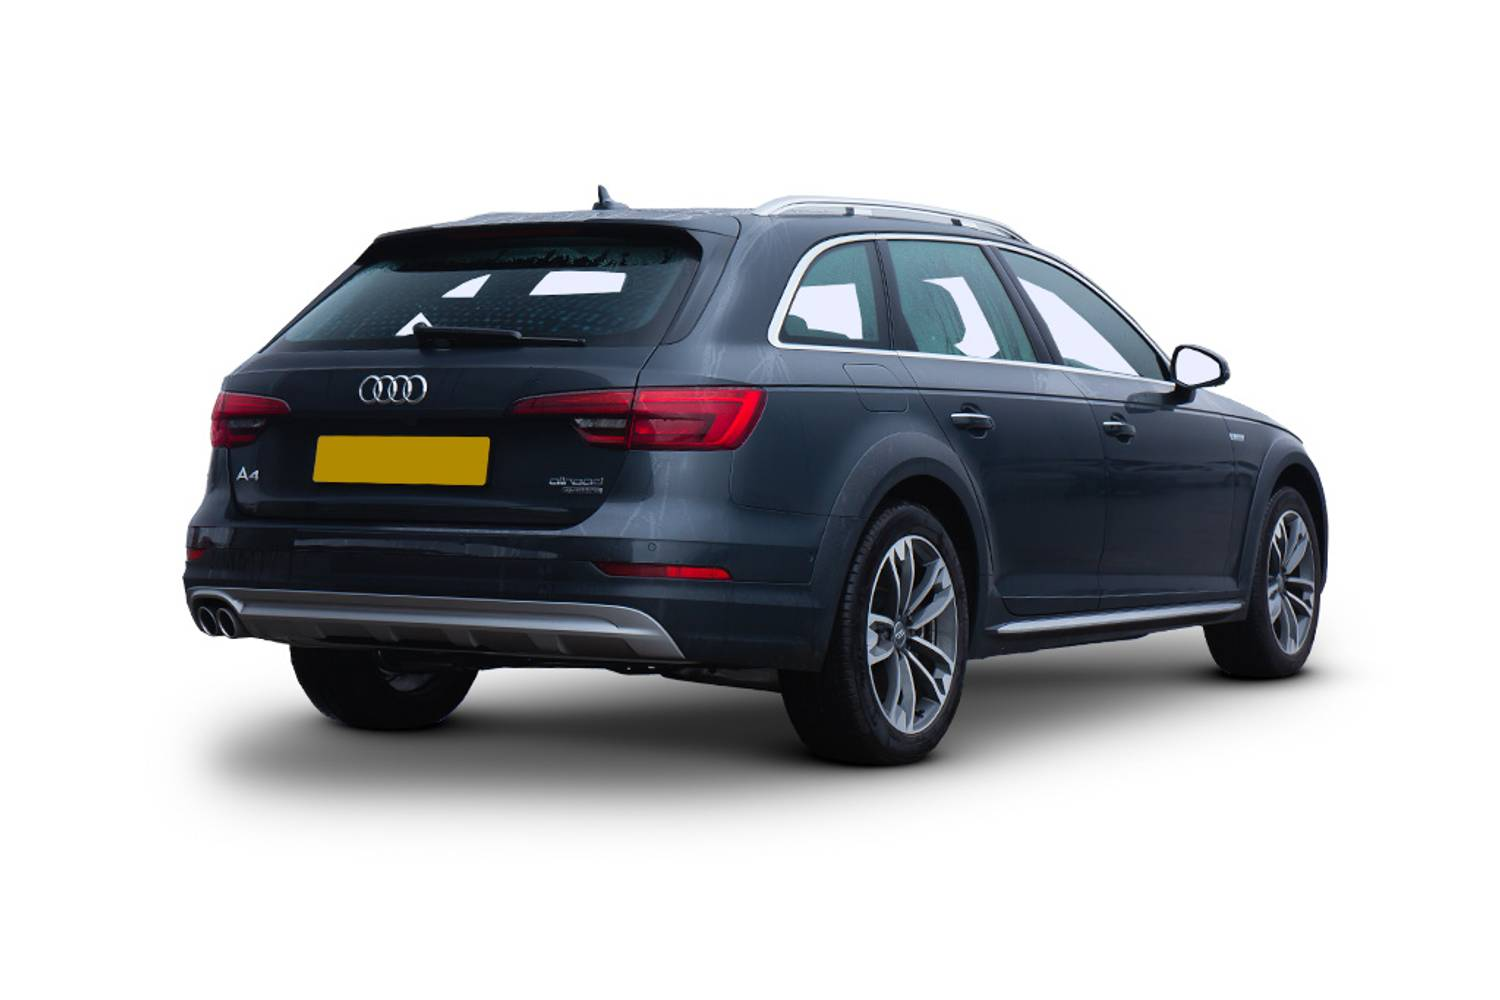 new audi a4 diesel allroad estate 3 0 tdi 272 ps quattro sport 5 door tip tronic 2016 for sale. Black Bedroom Furniture Sets. Home Design Ideas